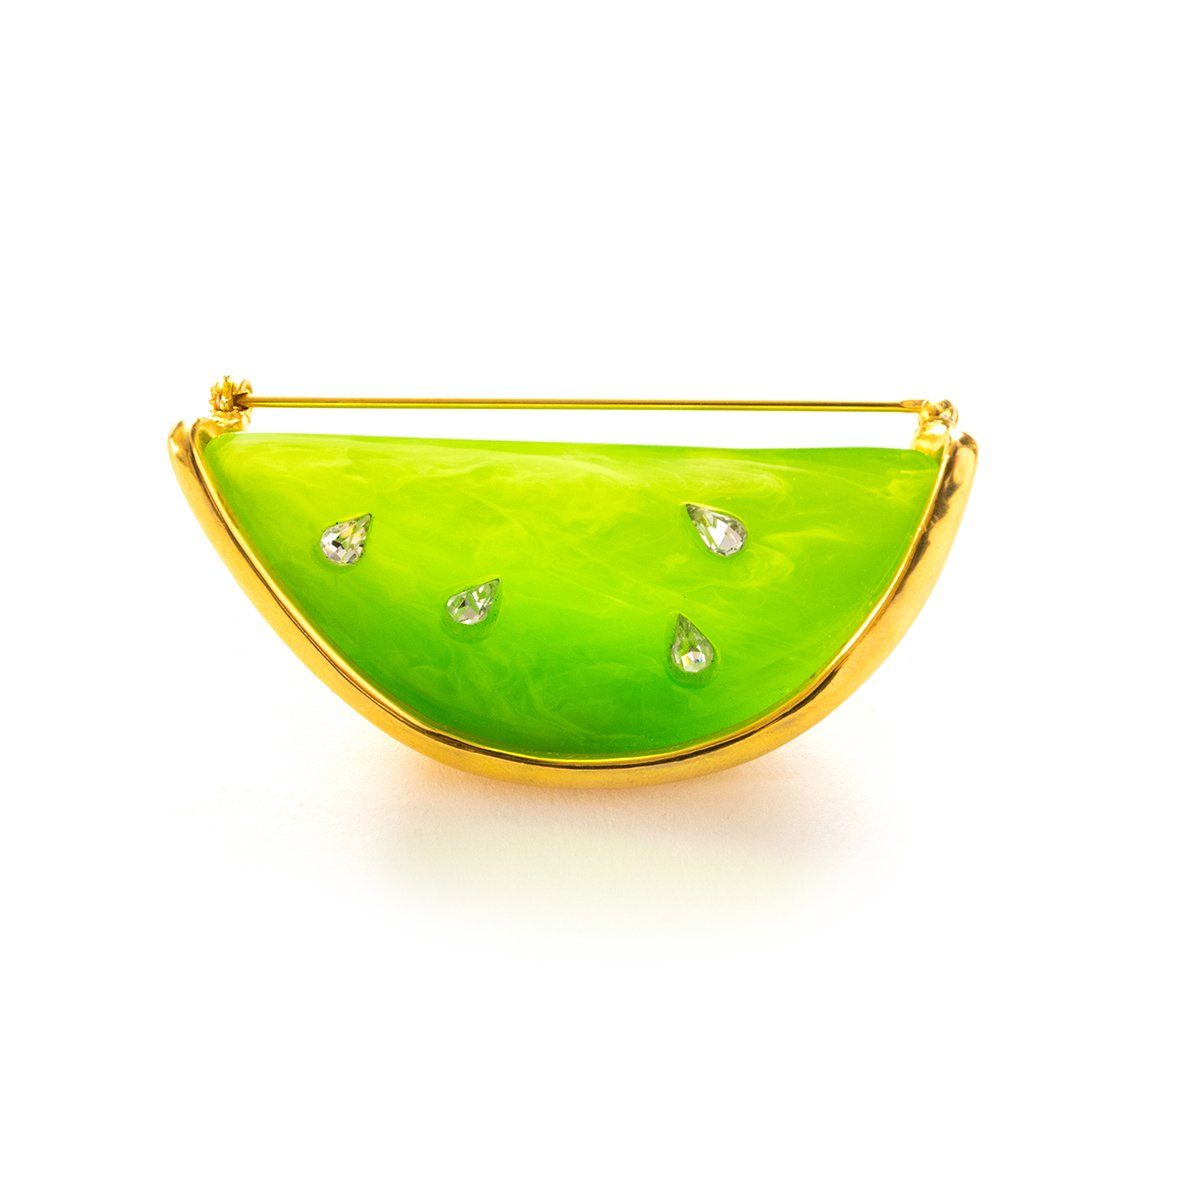 Vintage 1980s Givenchy Melon Slice Brooch, Lucite & Gold Plate